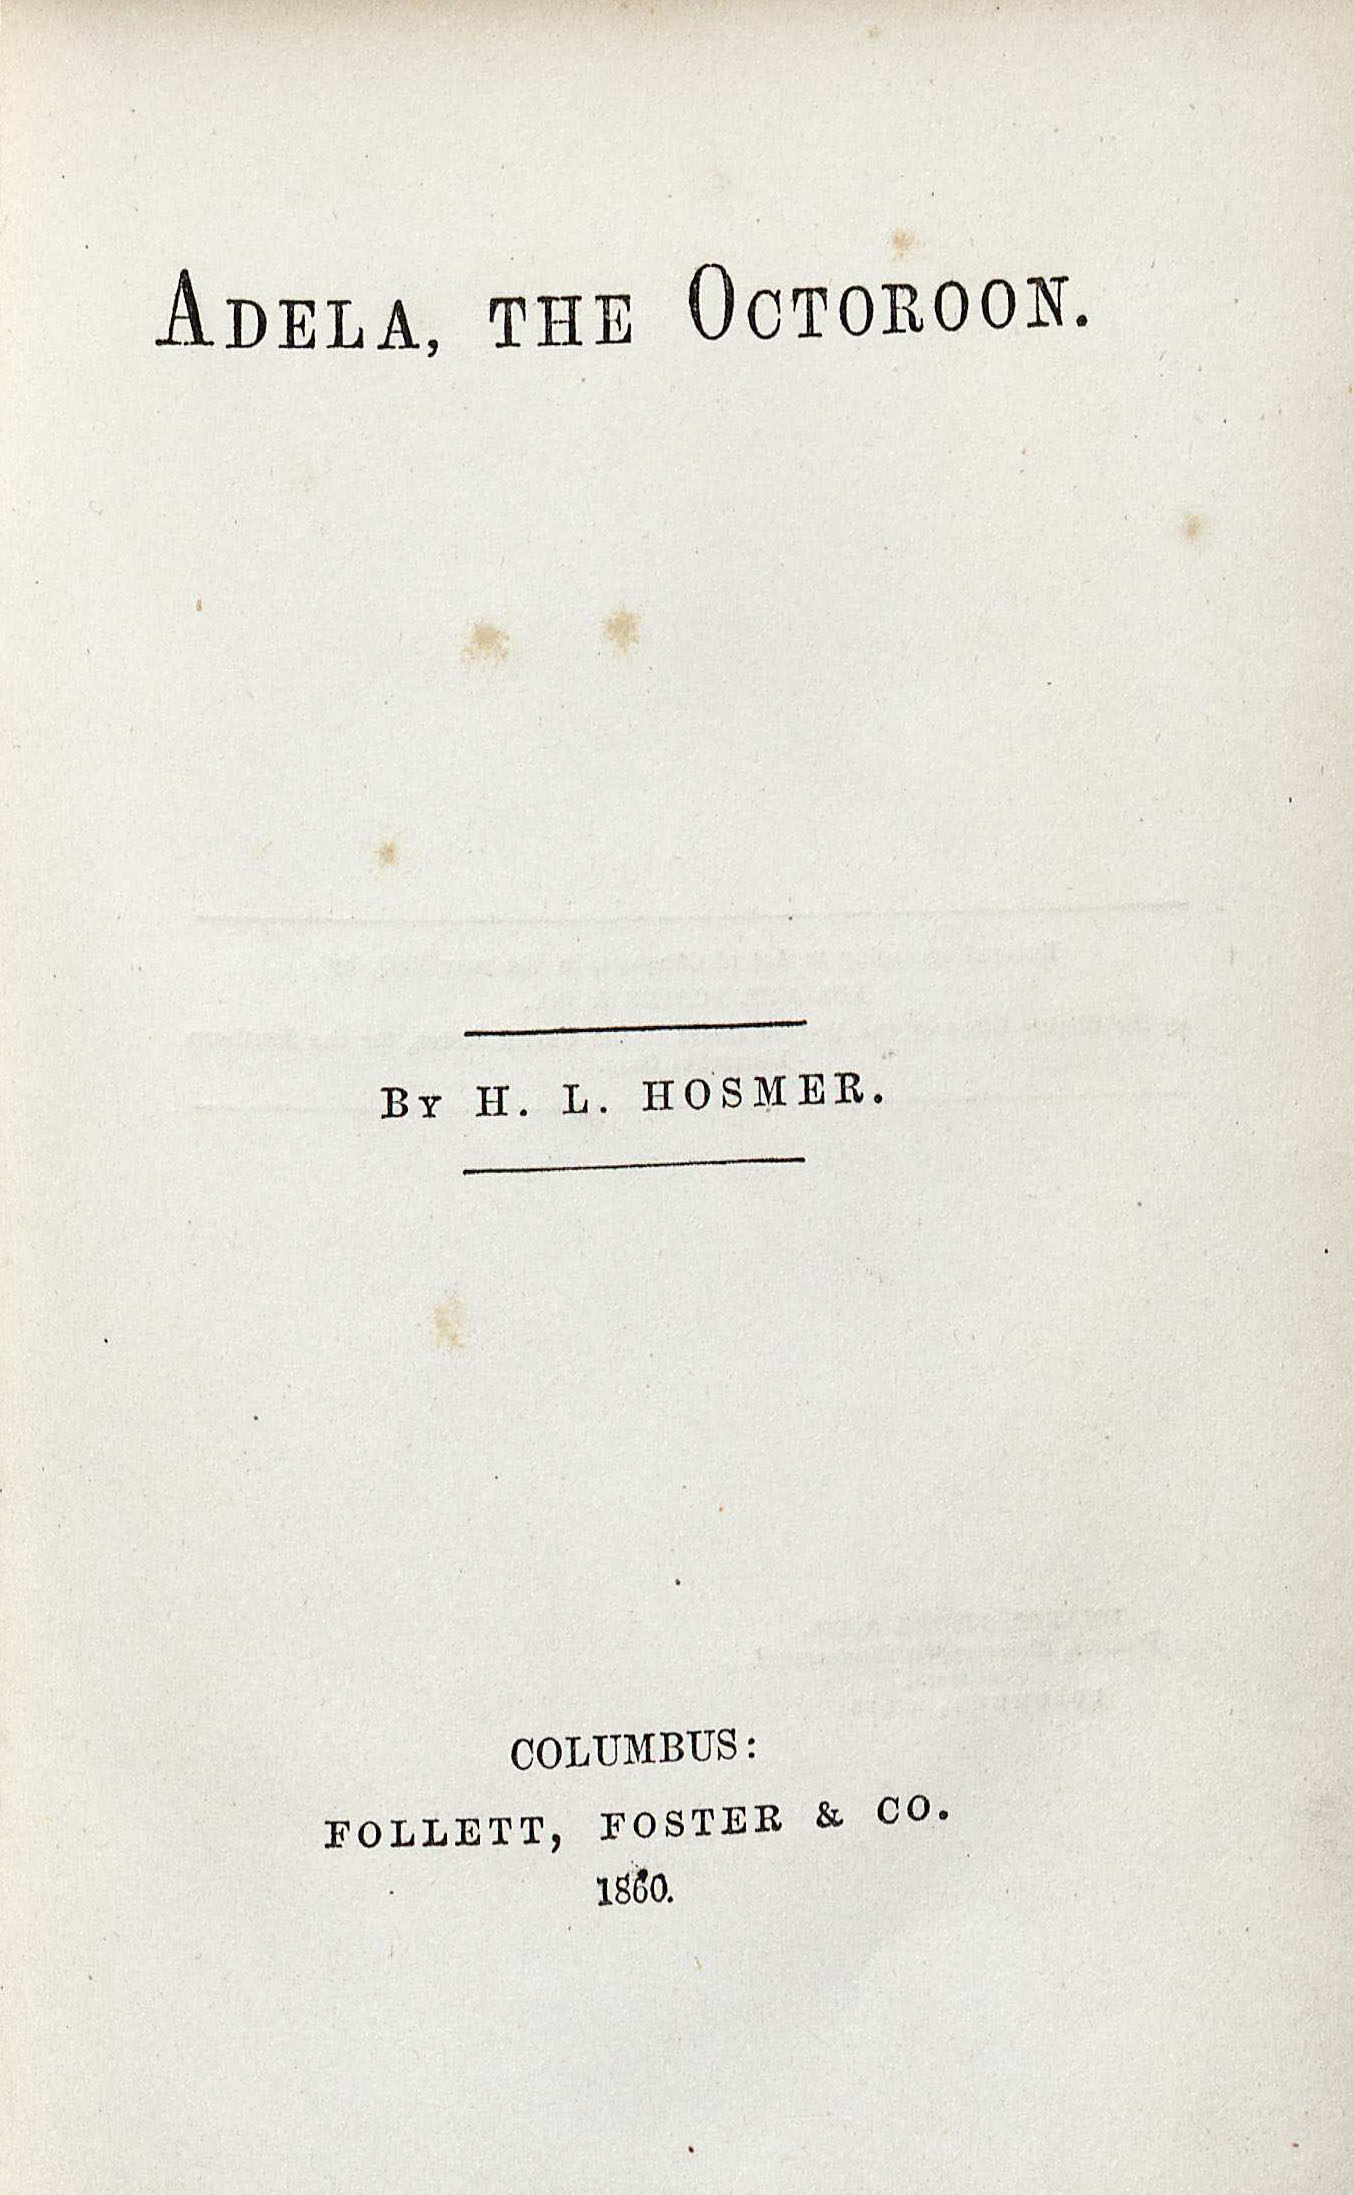 Title page of Adela, the Octoroon by Hezekiah Lord Hosmer, 1860. (PS646 .F53 .H682 A4 1860. Clifton Waller Barrett Library of American Literature. Image by Petrina Jackson)